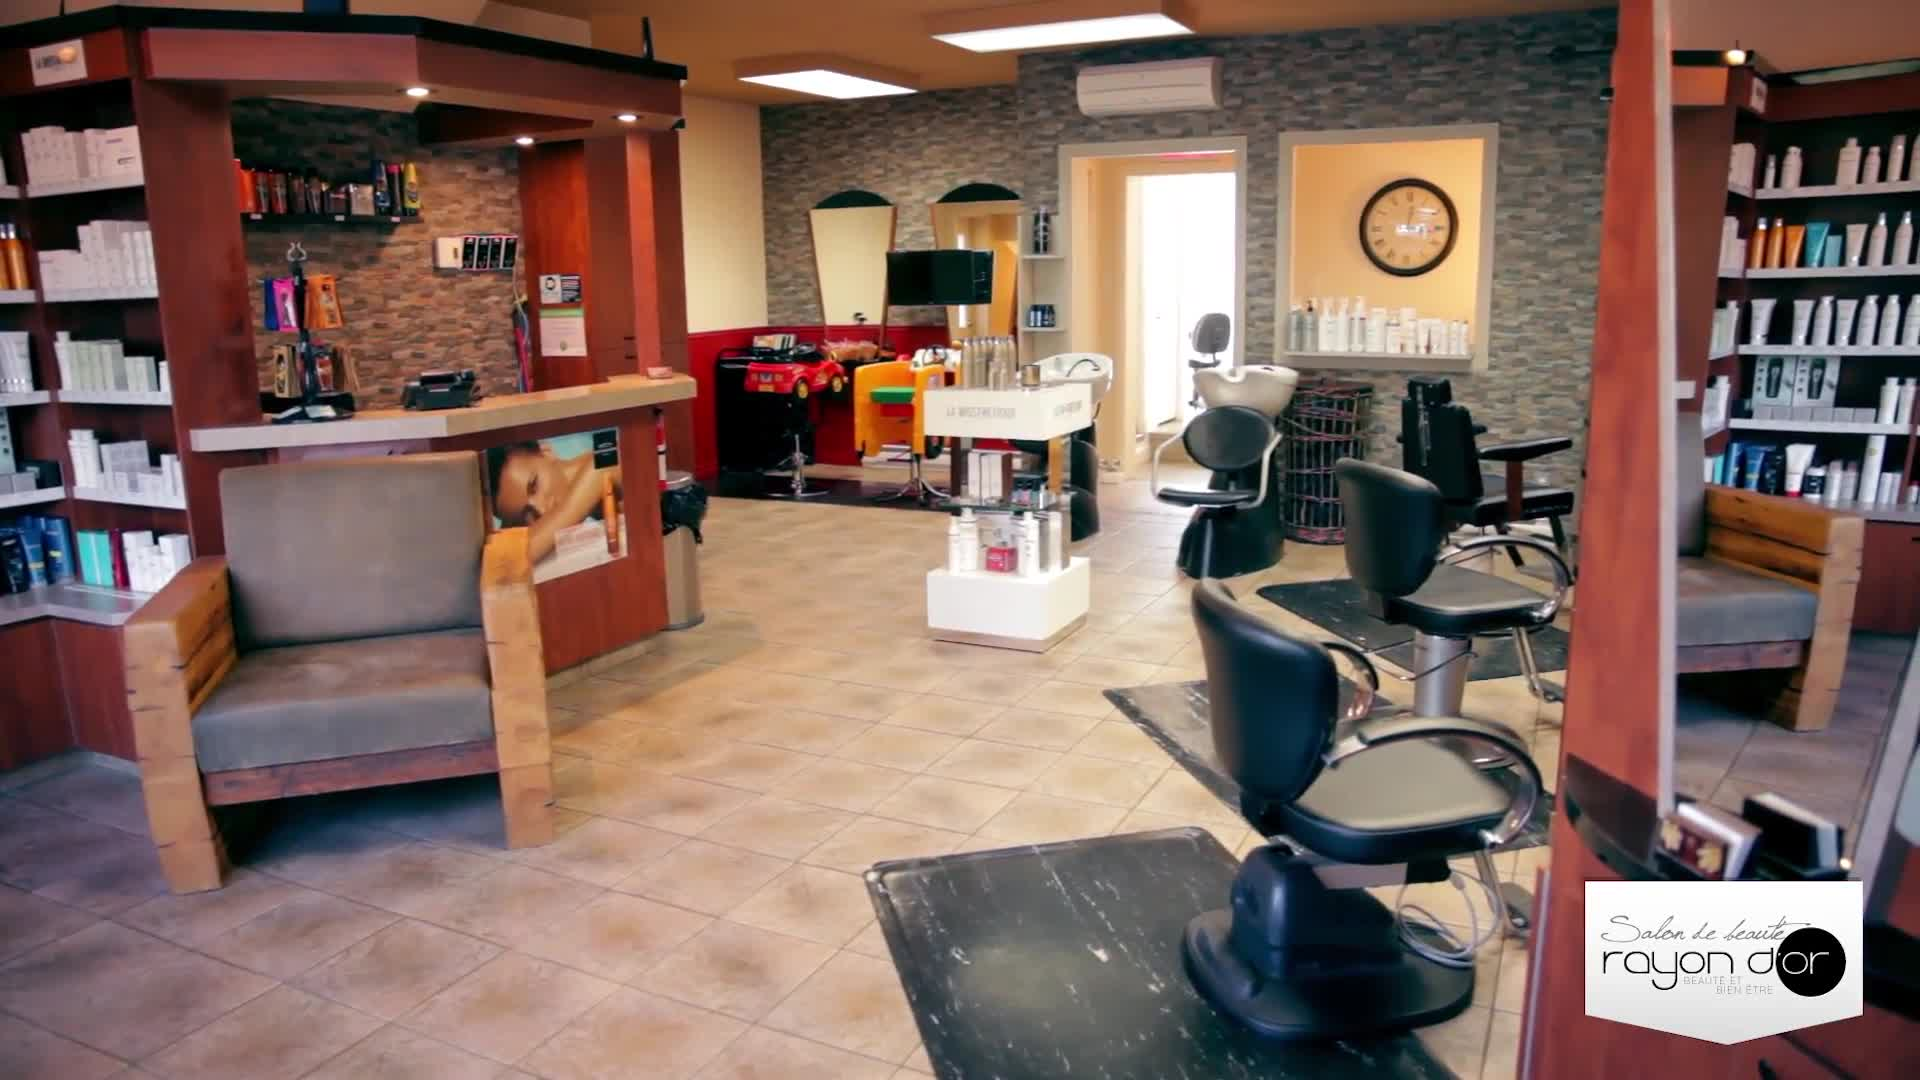 Salon de Beauté Rayon d'Or Inc - Salons de bronzage - 4188784932